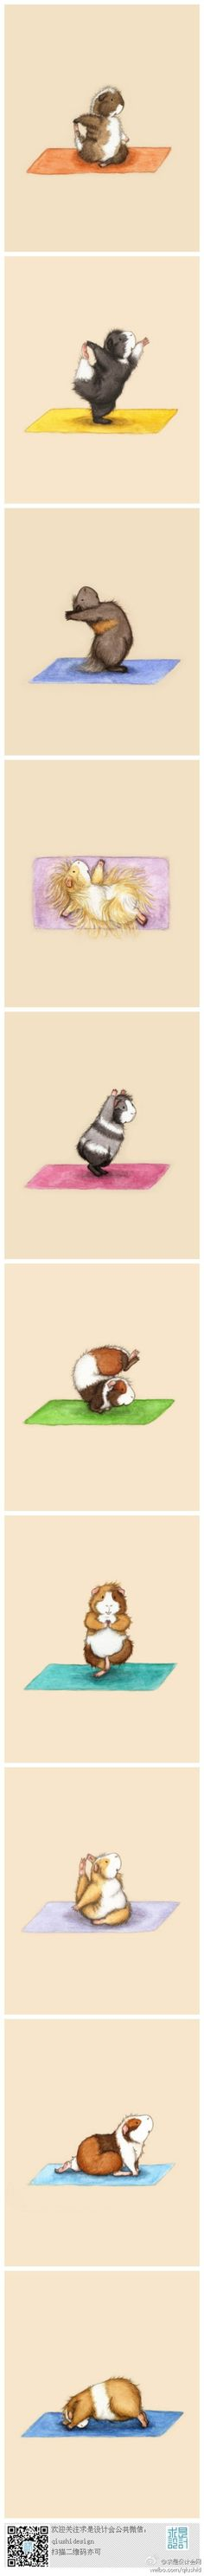 Guinea pig and yoga illustration from duitang